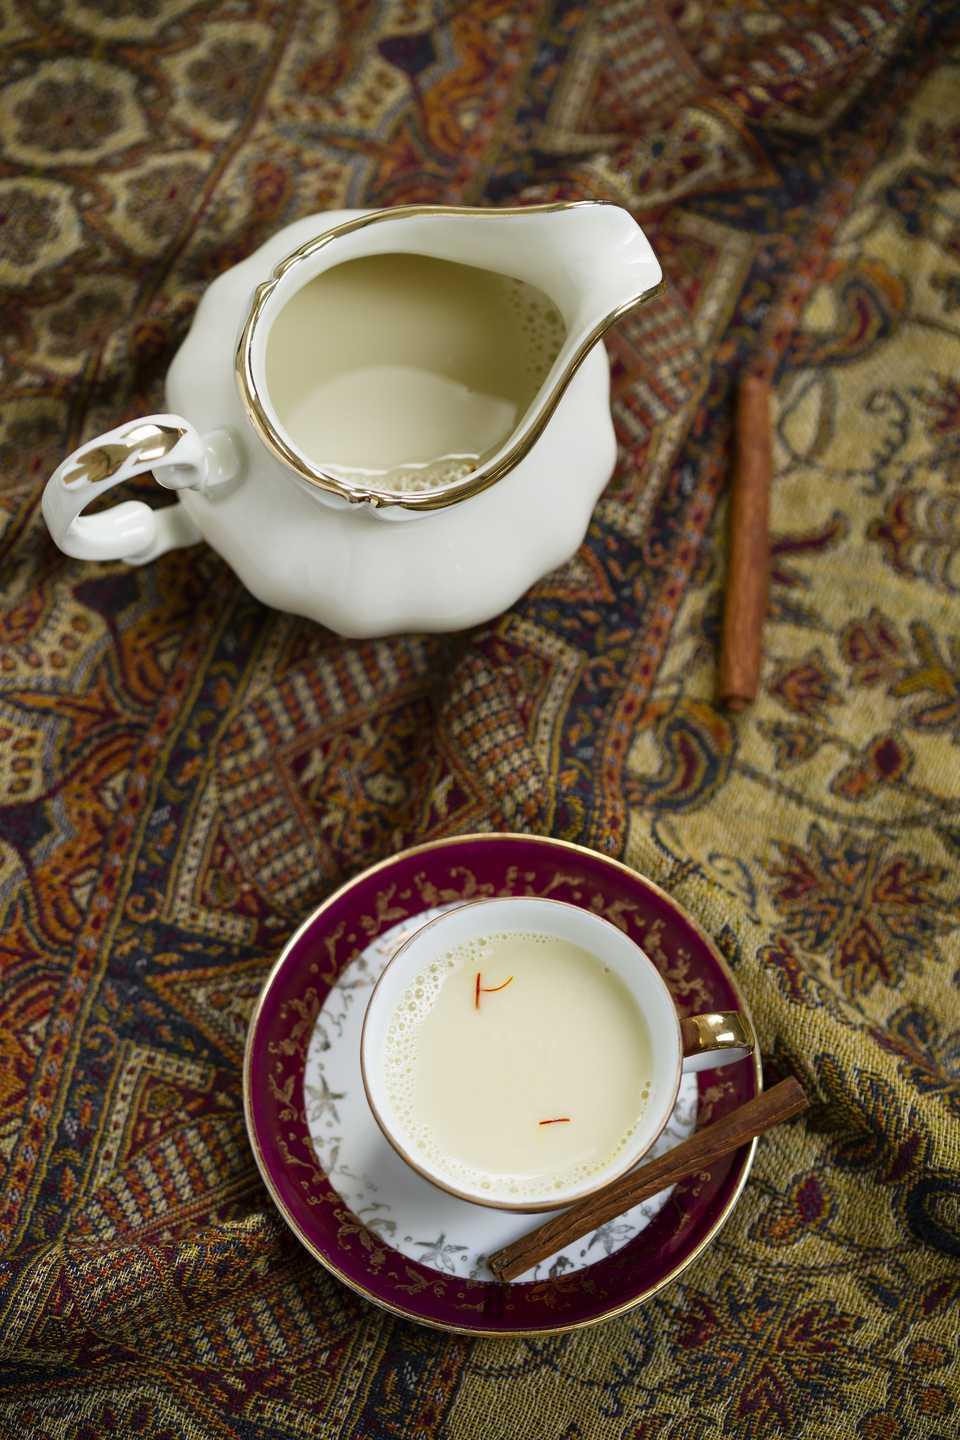 Milk pitcher and demitasse cup of milk spiced with saffron and cinnamon on cloth